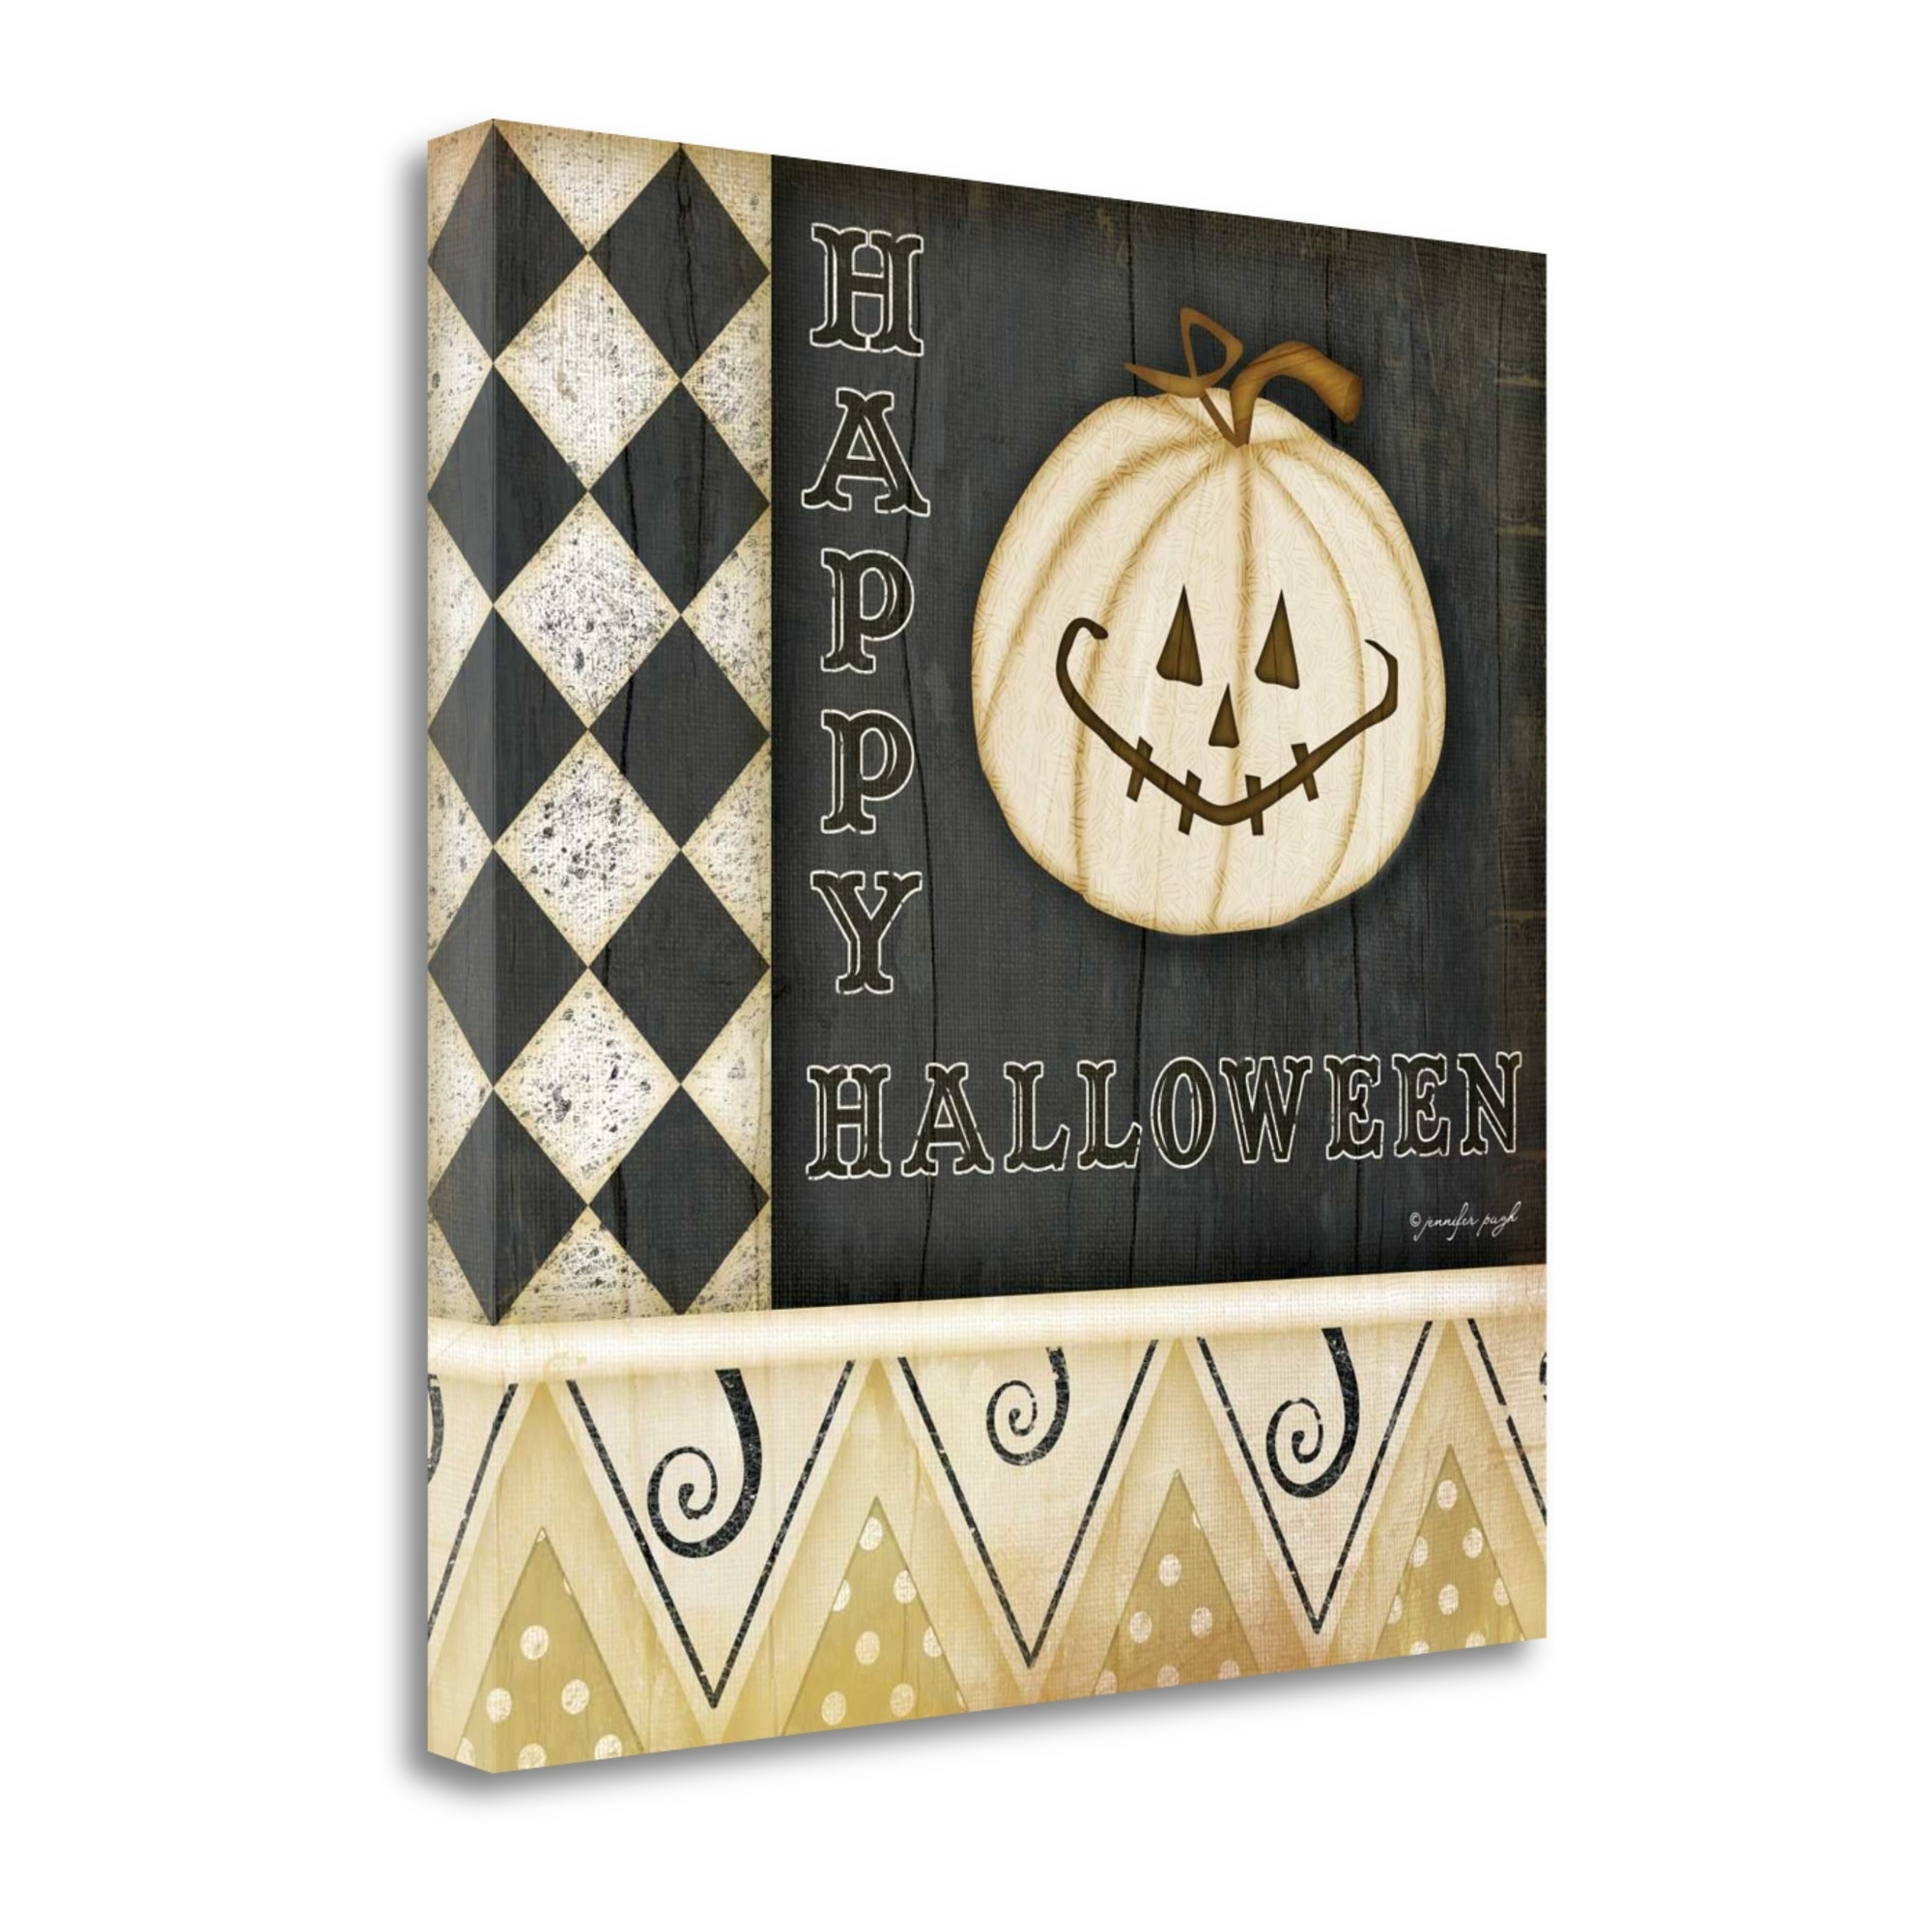 "Happy Halloween - Pumpkin By Jennifer Pugh, 24"" x 24\"" Fine Art Giclee Print on Gallery Wrap Canvas, Ready to Hang"